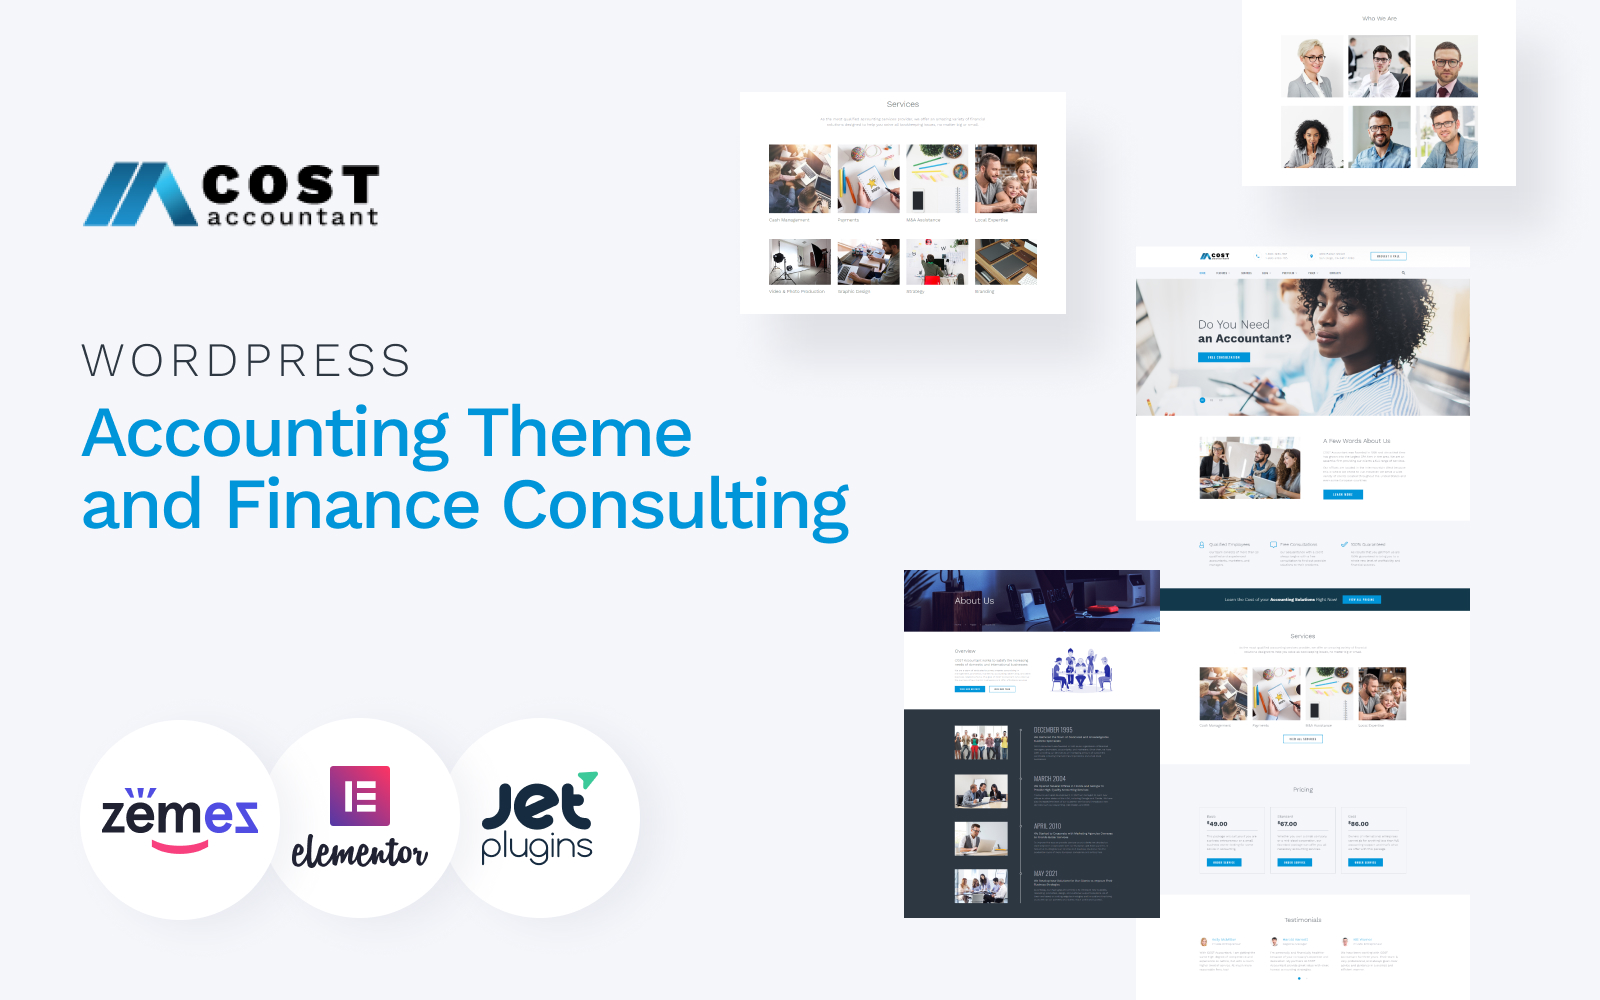 Cost Accountant - WordPress Accounting Theme and Finance Consulting WordPress Theme